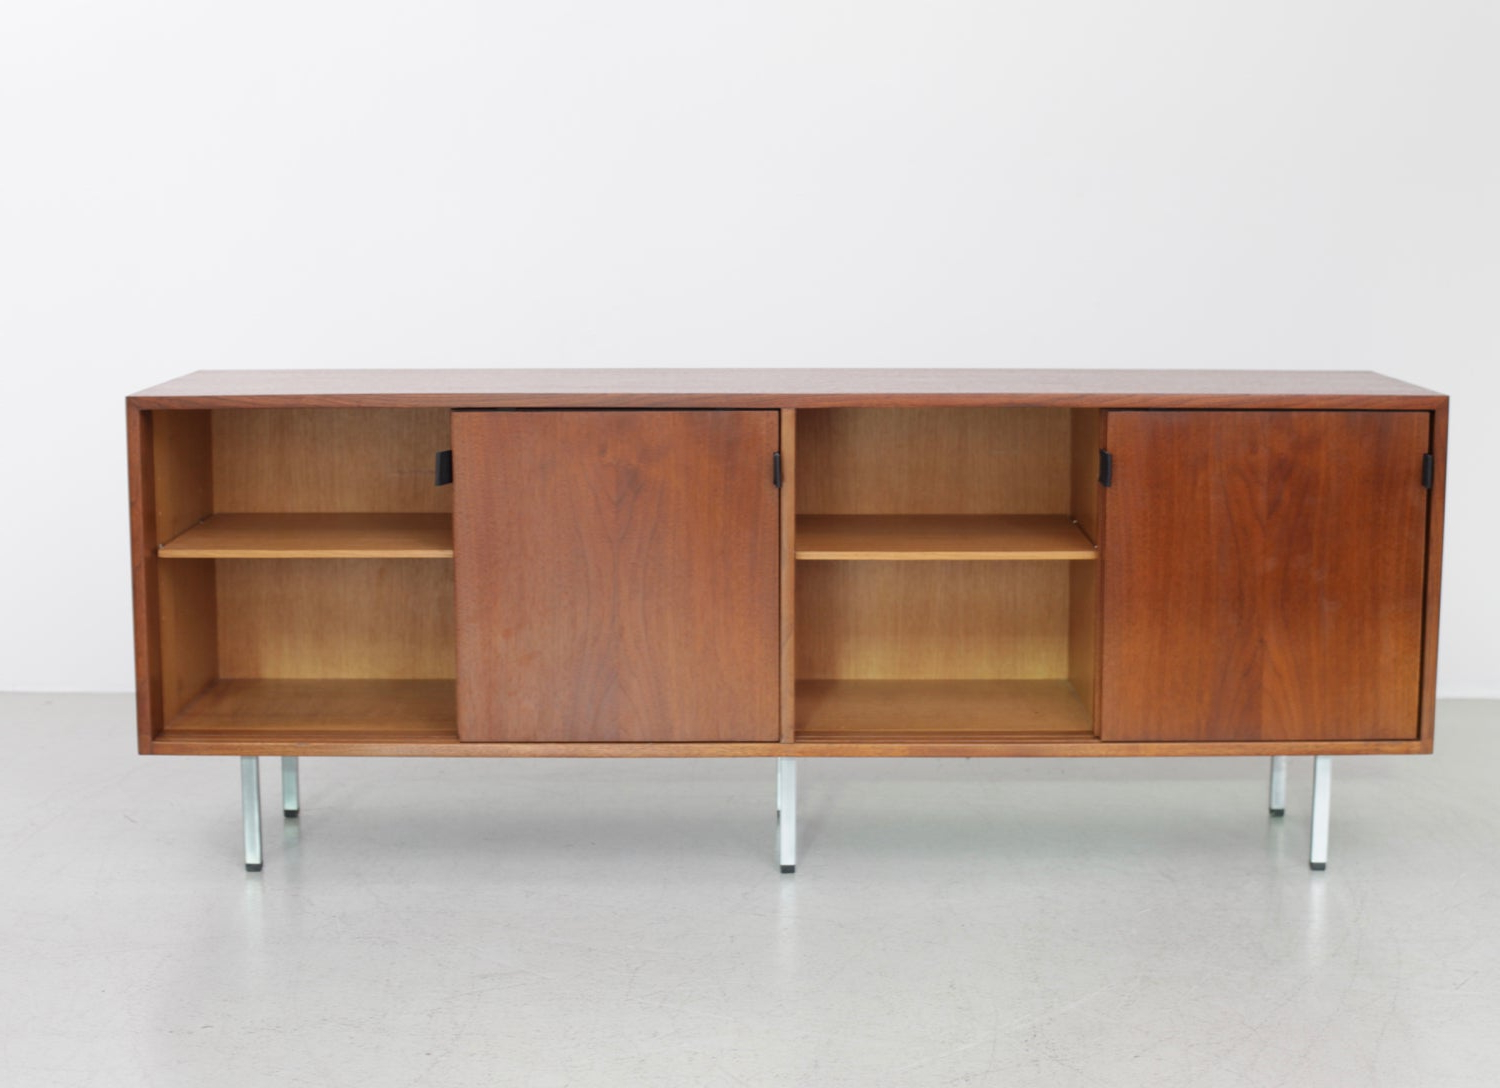 Florence Knoll Credenza Sideboard Walnut With Leather Pulls Regarding Retro Holistic Credenzas (View 10 of 20)